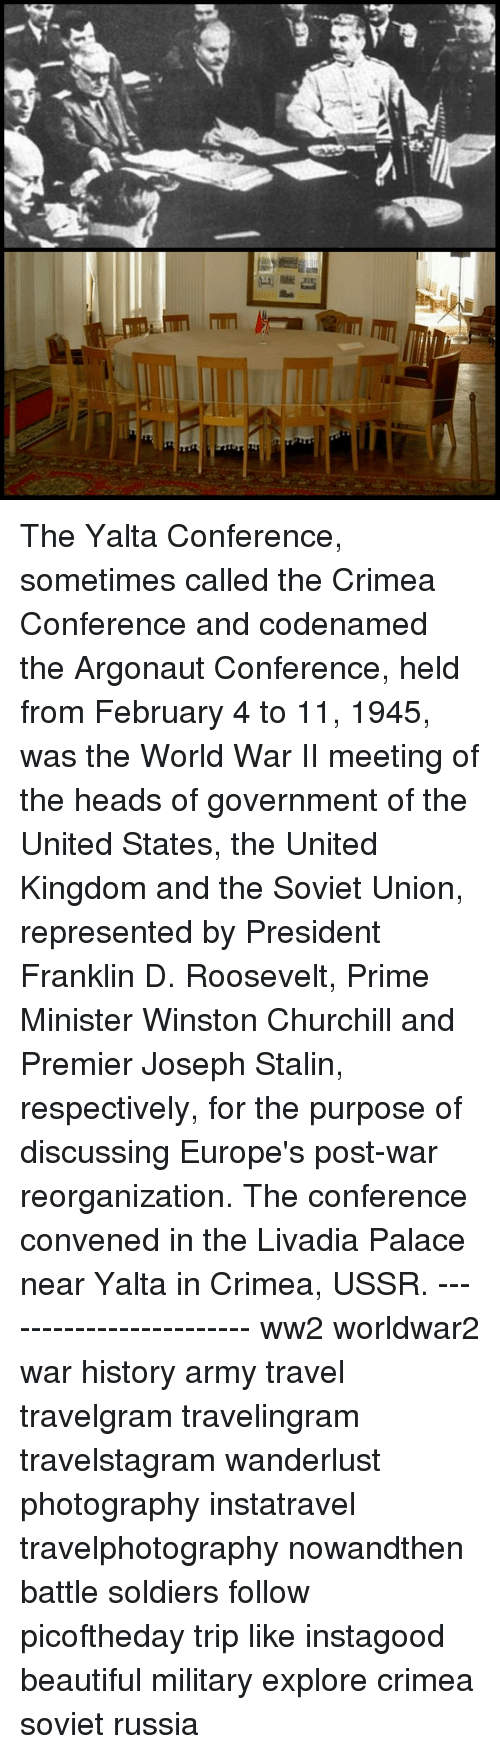 a description of the yalta conference that was also called the crimea conference Find this pin and more on sir winston s churchill by hagrarian the yalta conference, sometimes called the crimea conference description from.